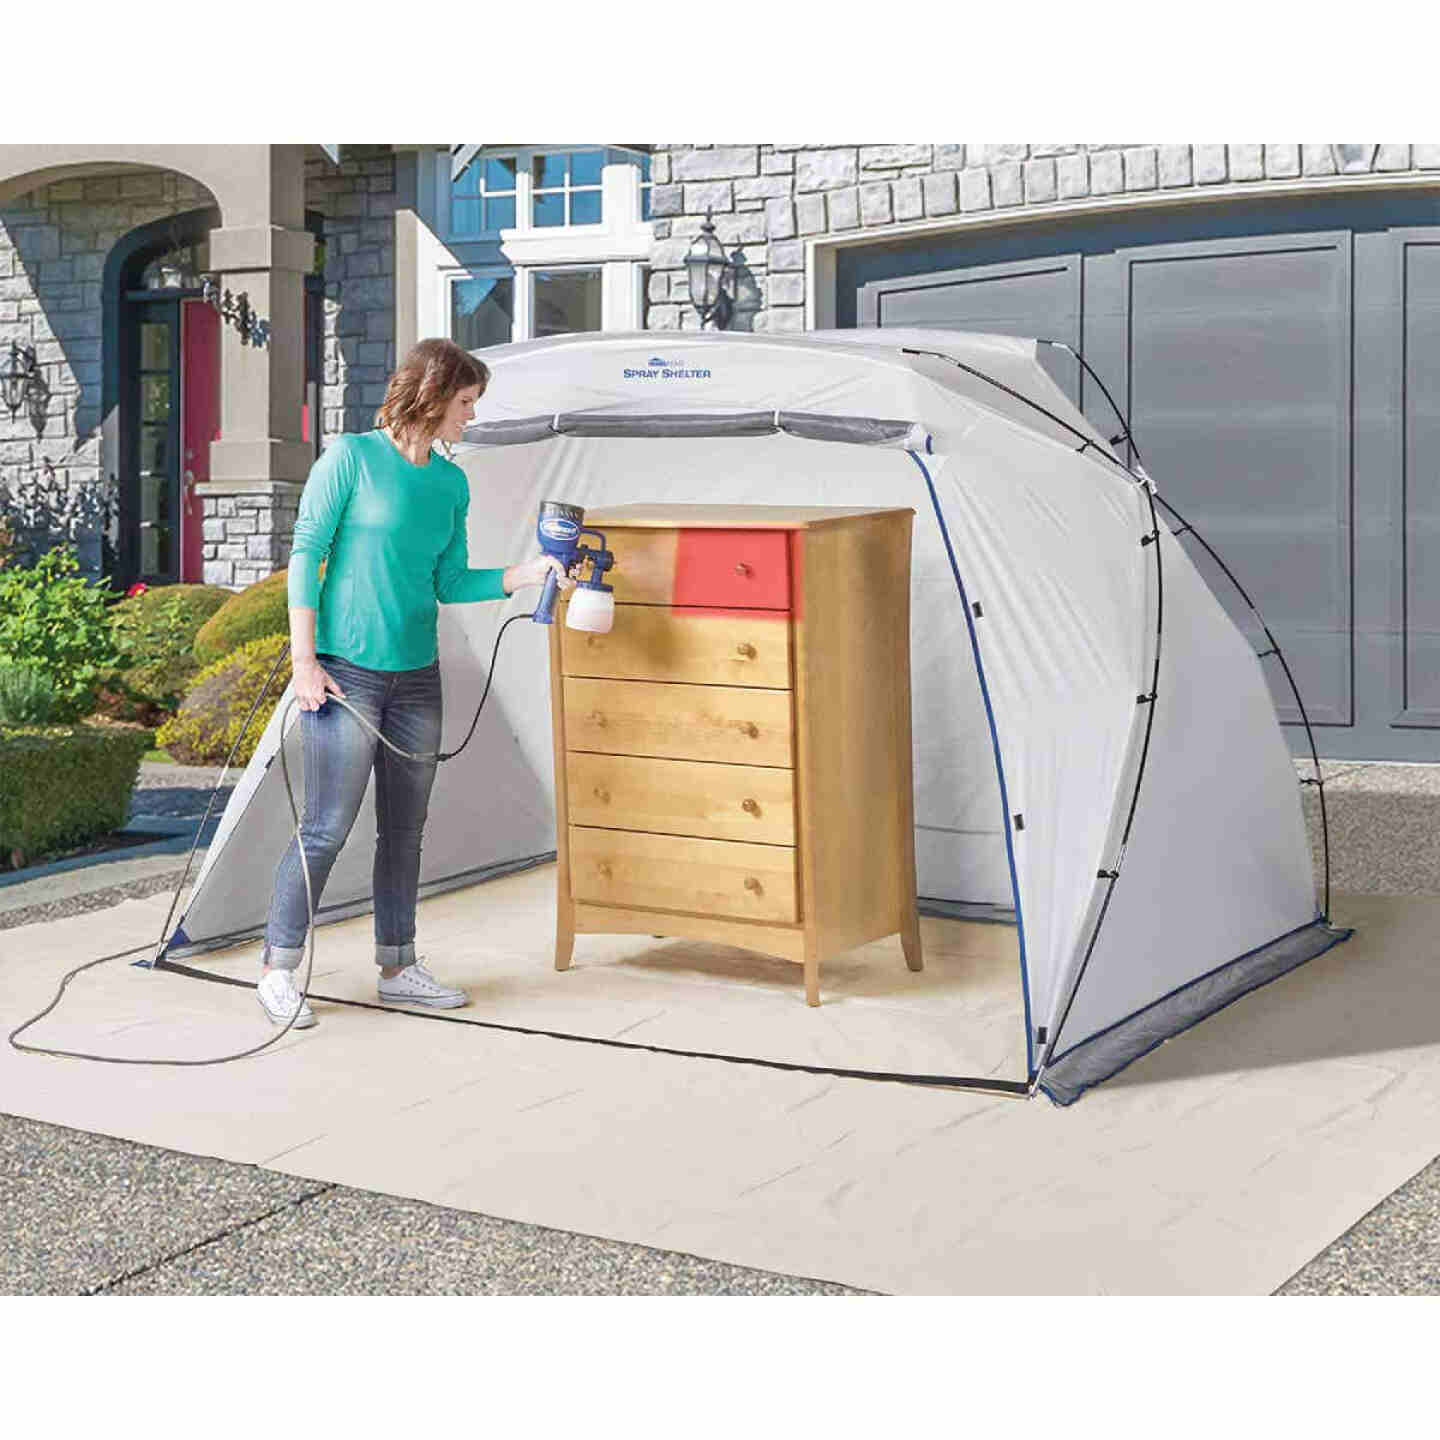 Wagner 9 Ft. W. x 5.5 Ft. H. x 6 Ft. D. Large Portable Spray Shelter Image 2